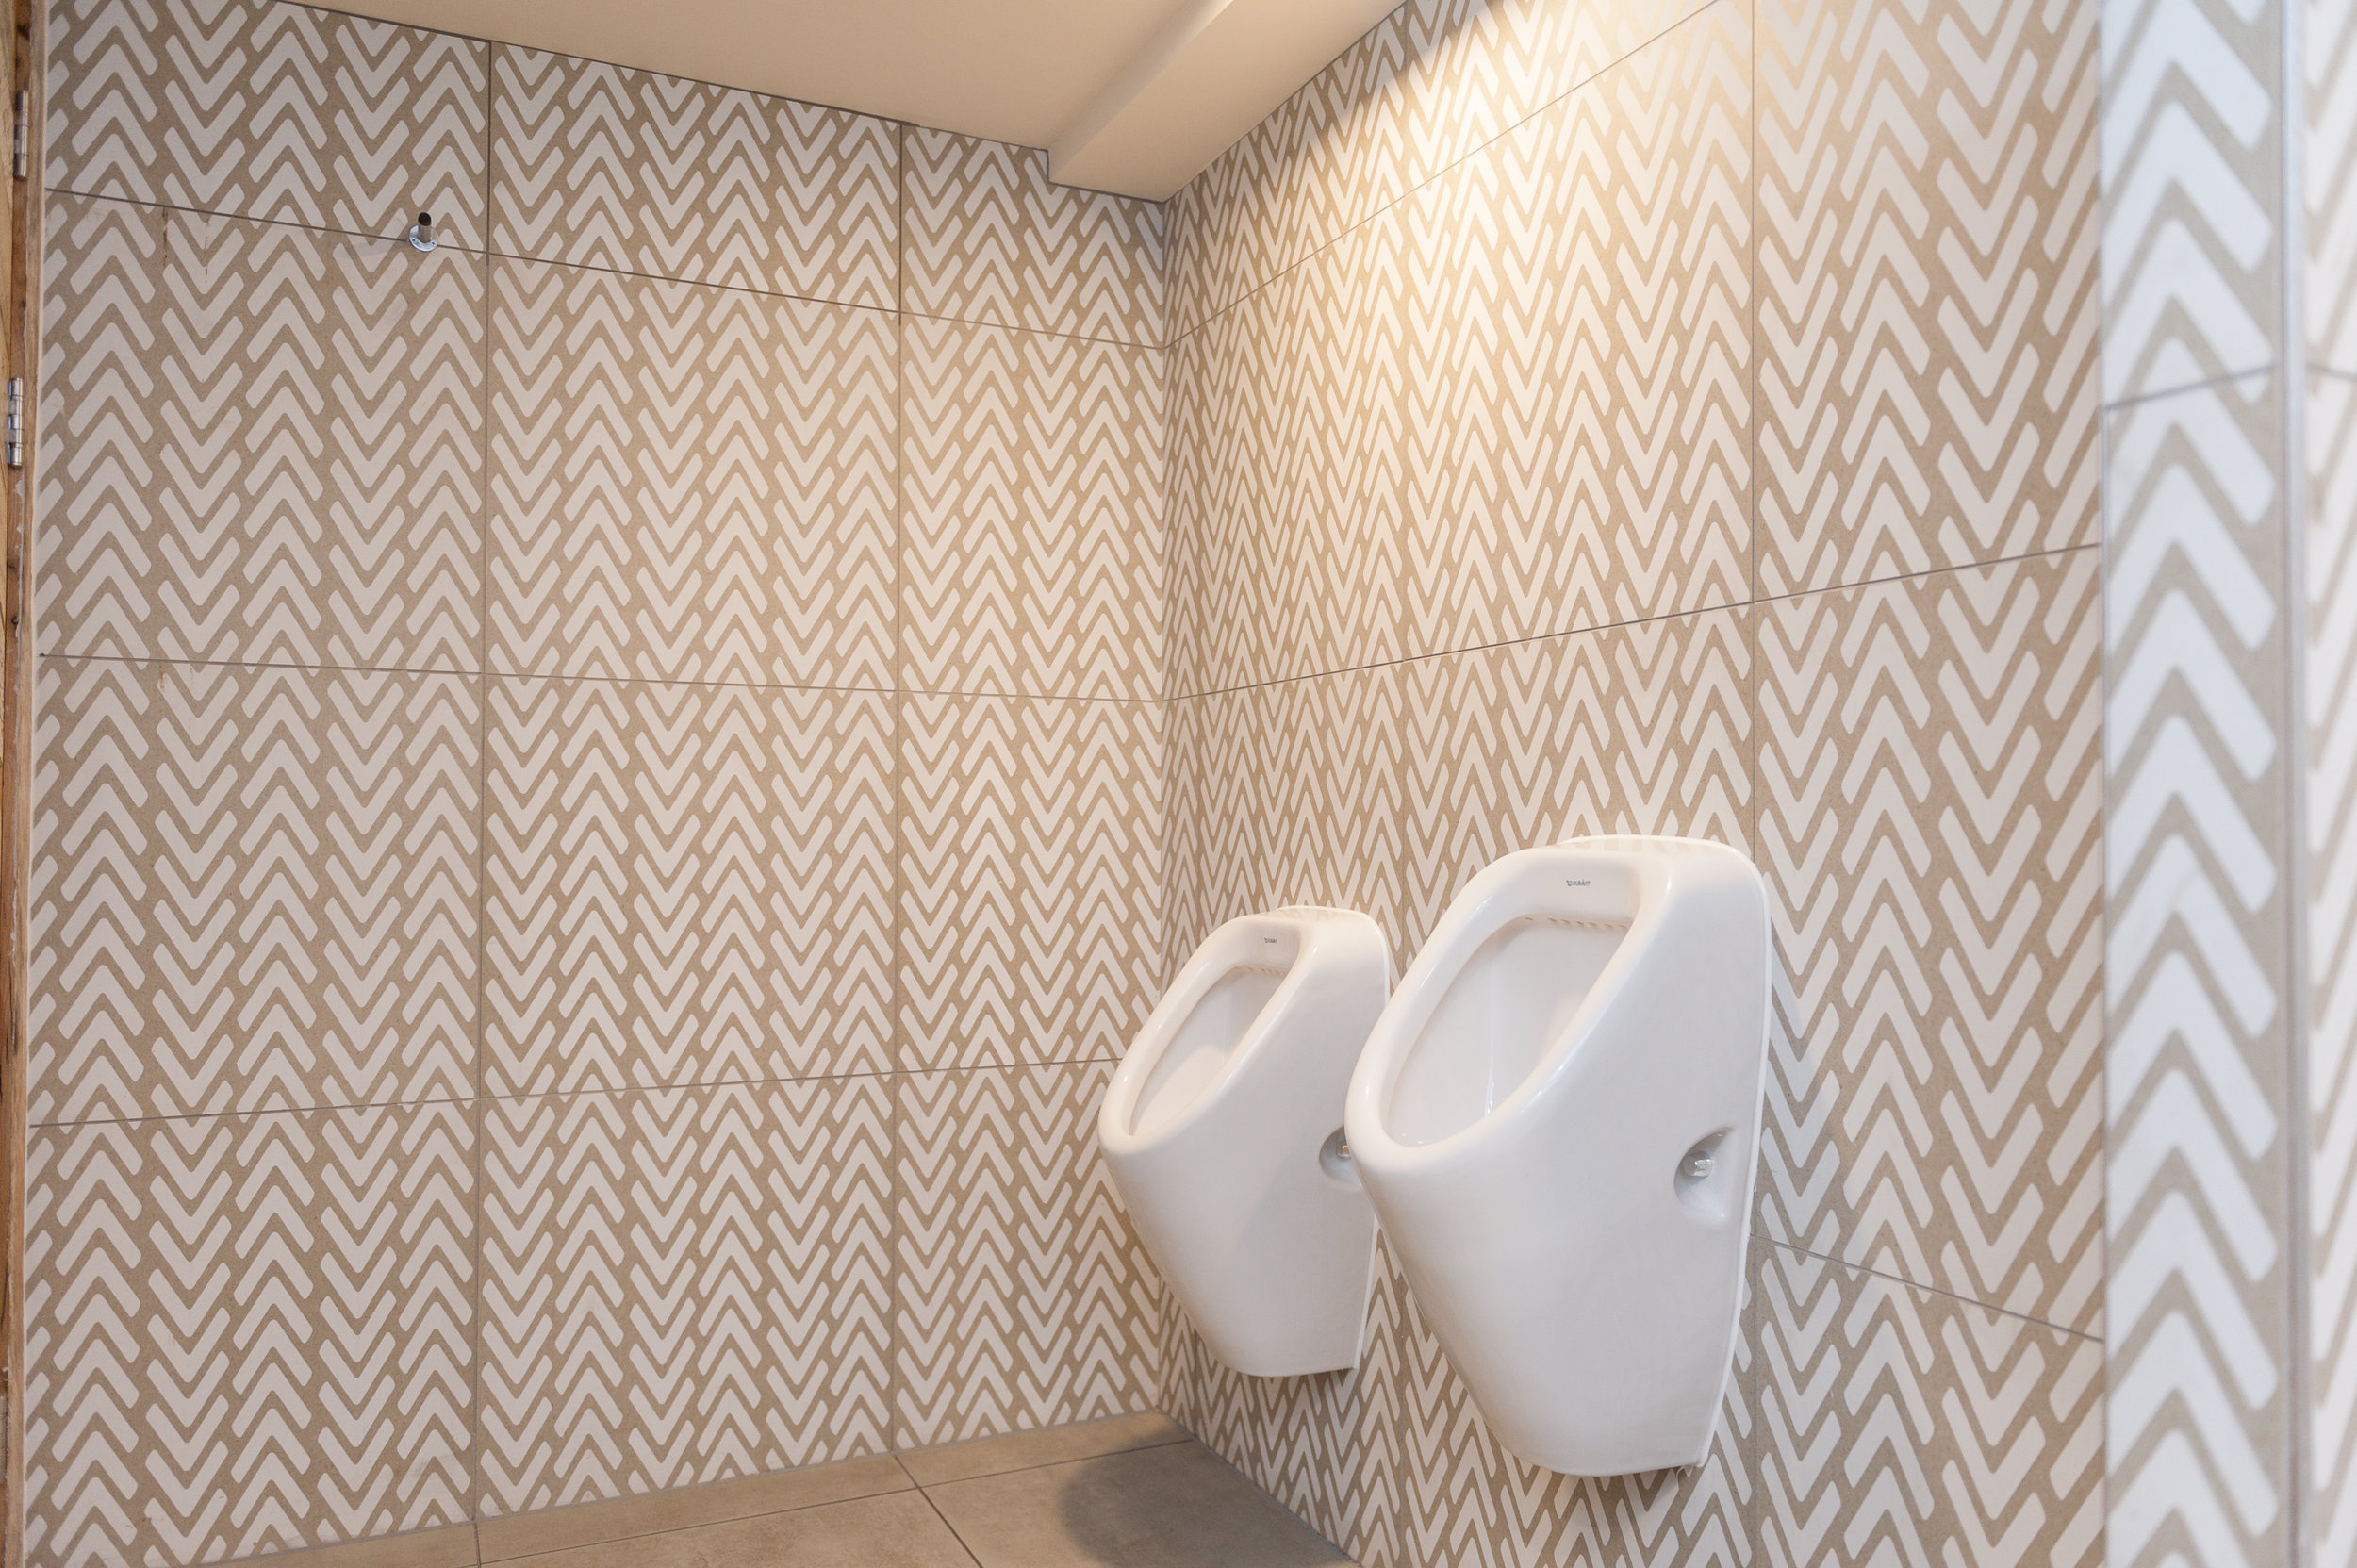 Nando's, Nottingham… - Our Felice range of 60x60cm porcelain tiles used in this Nando's WC.